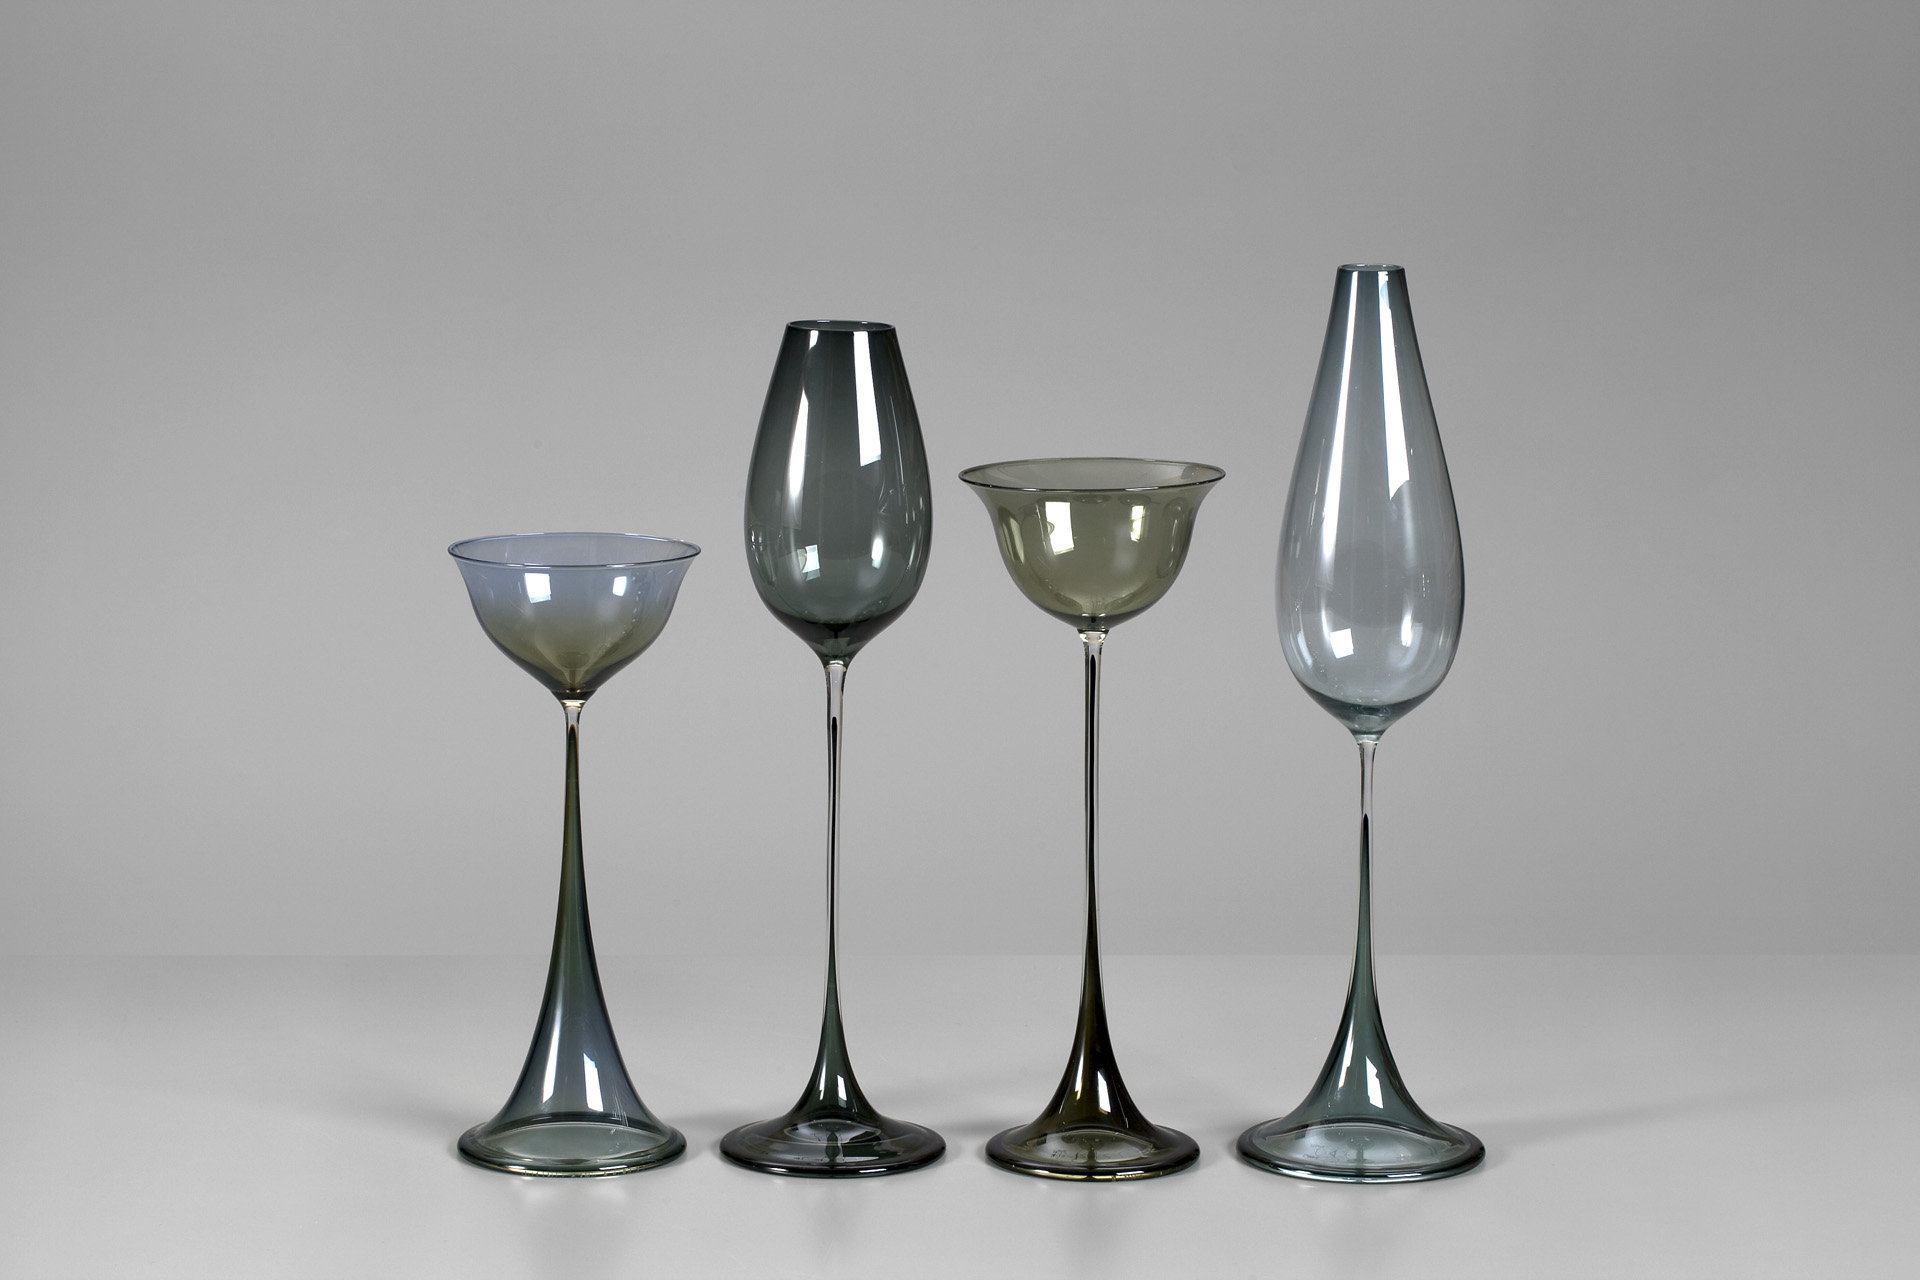 Group of Tulip Vases